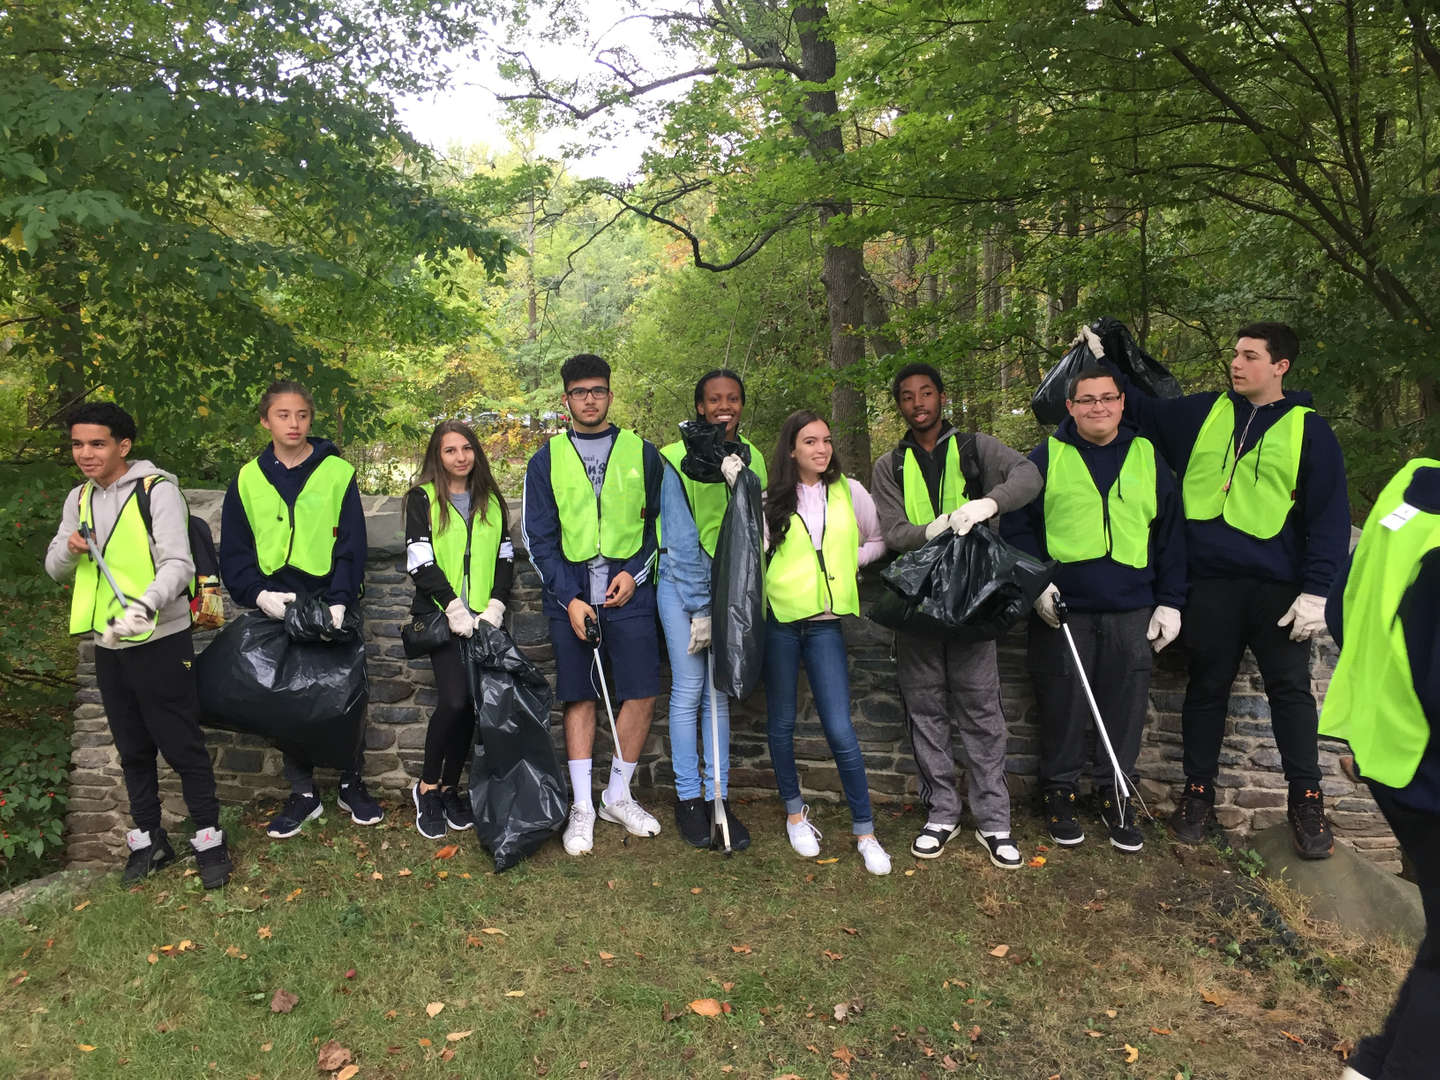 Volunteer students help clean and pick up litter